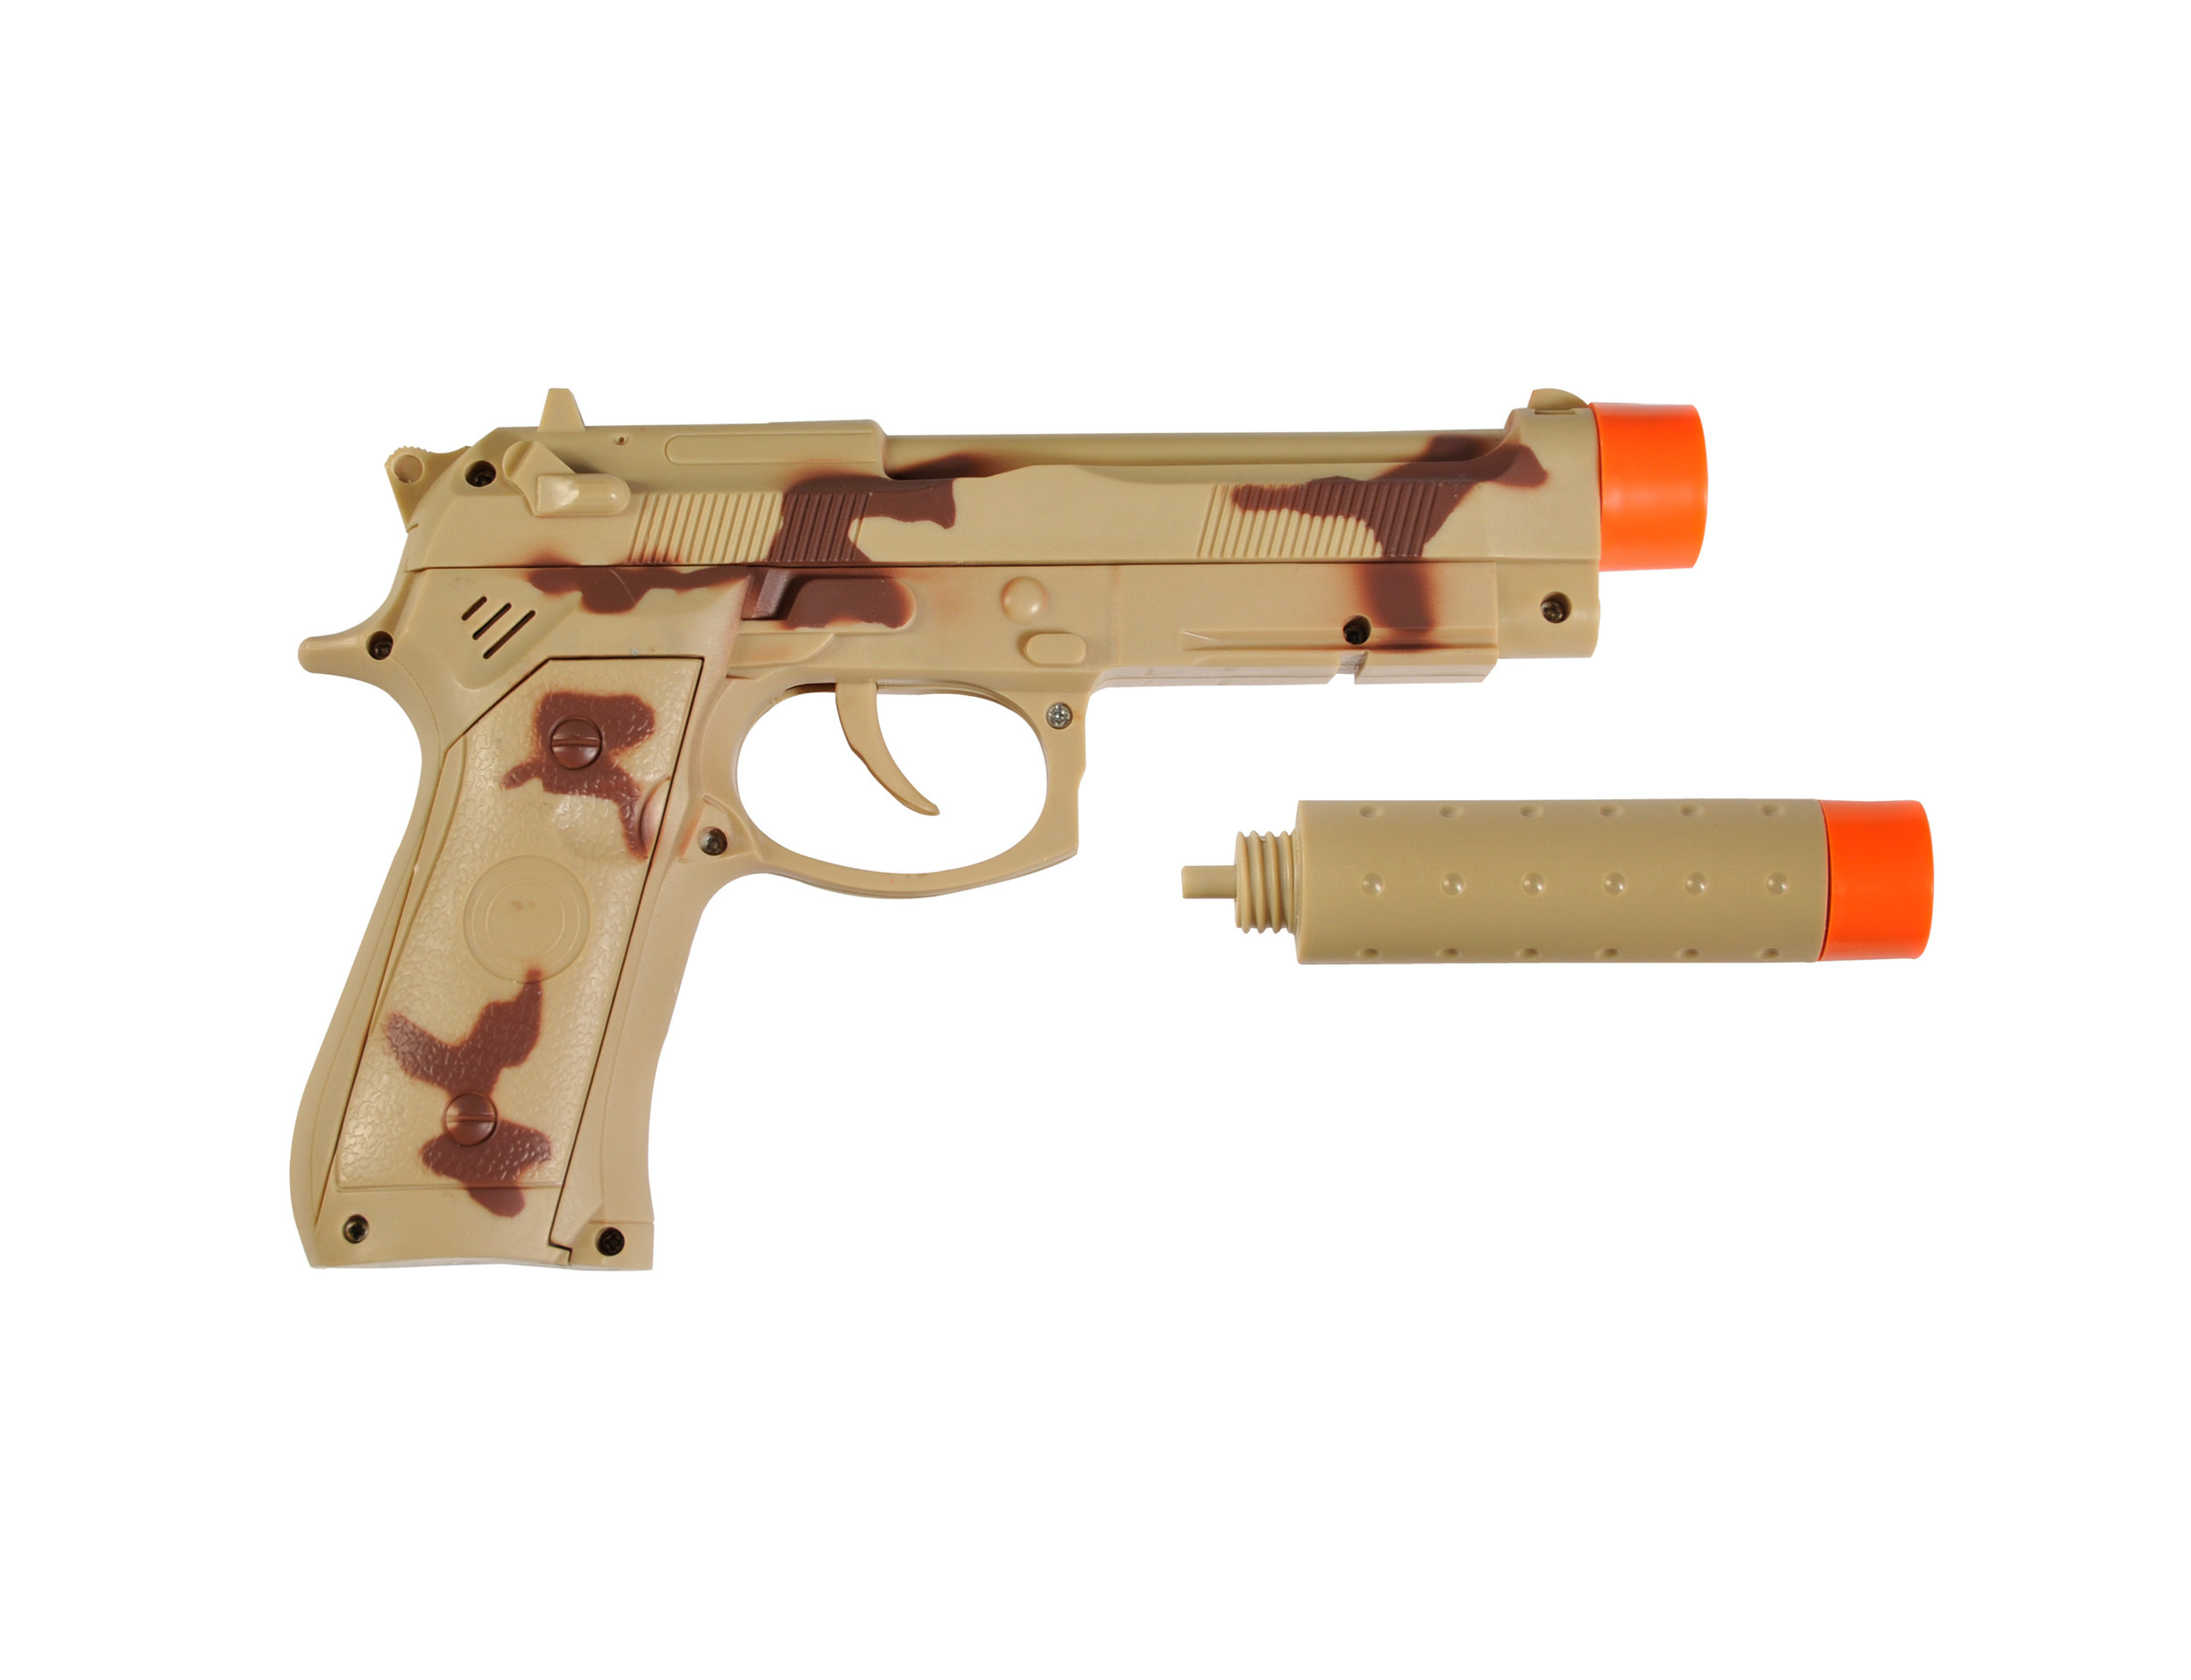 Maxx Action 9mm Toy Pistol with Silencer